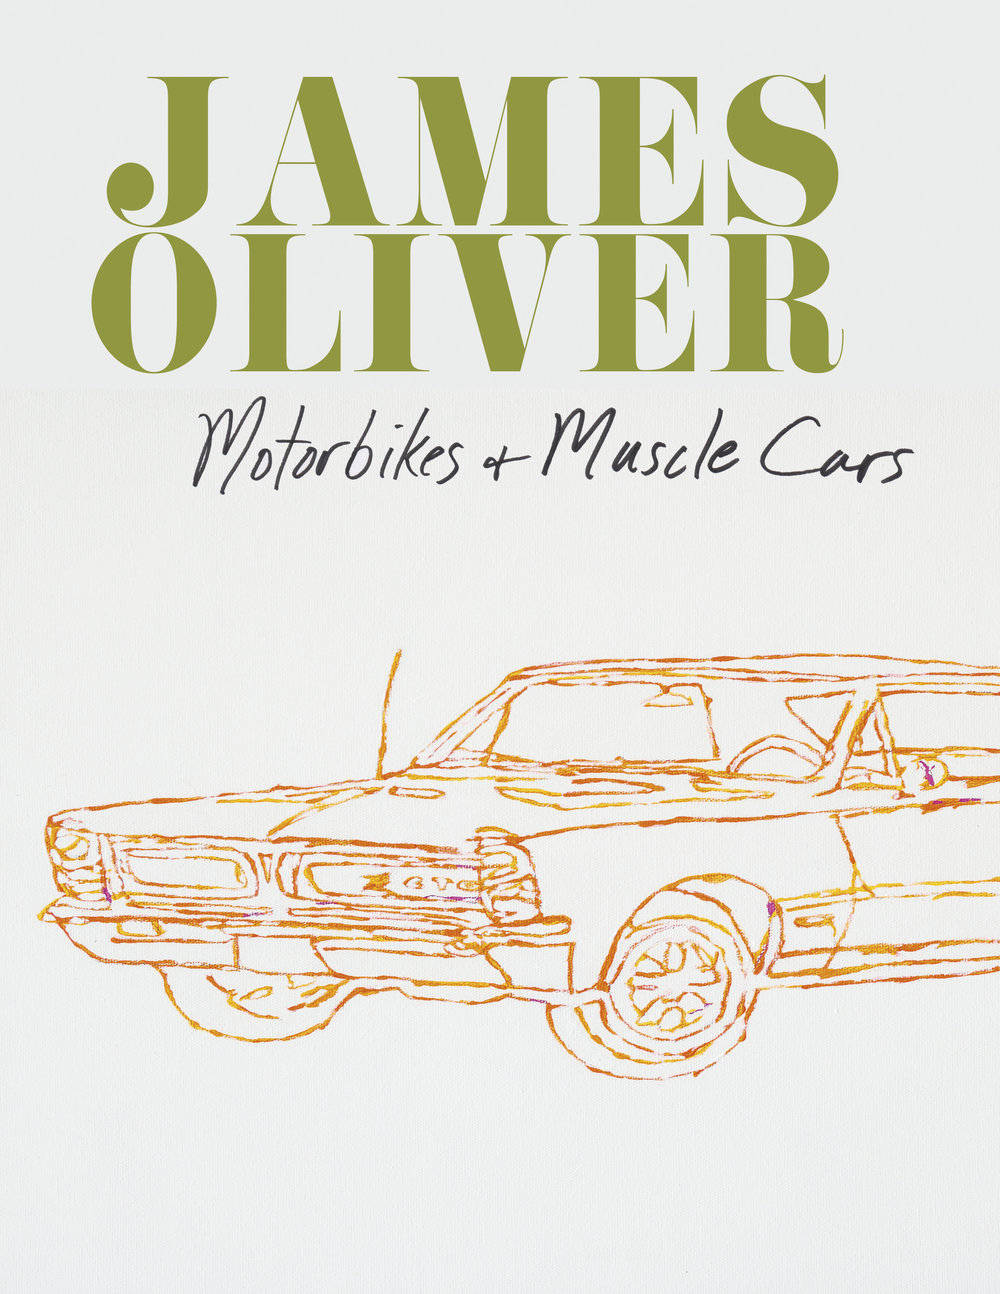 James Oliver Catalogue Cover rgb.jpg